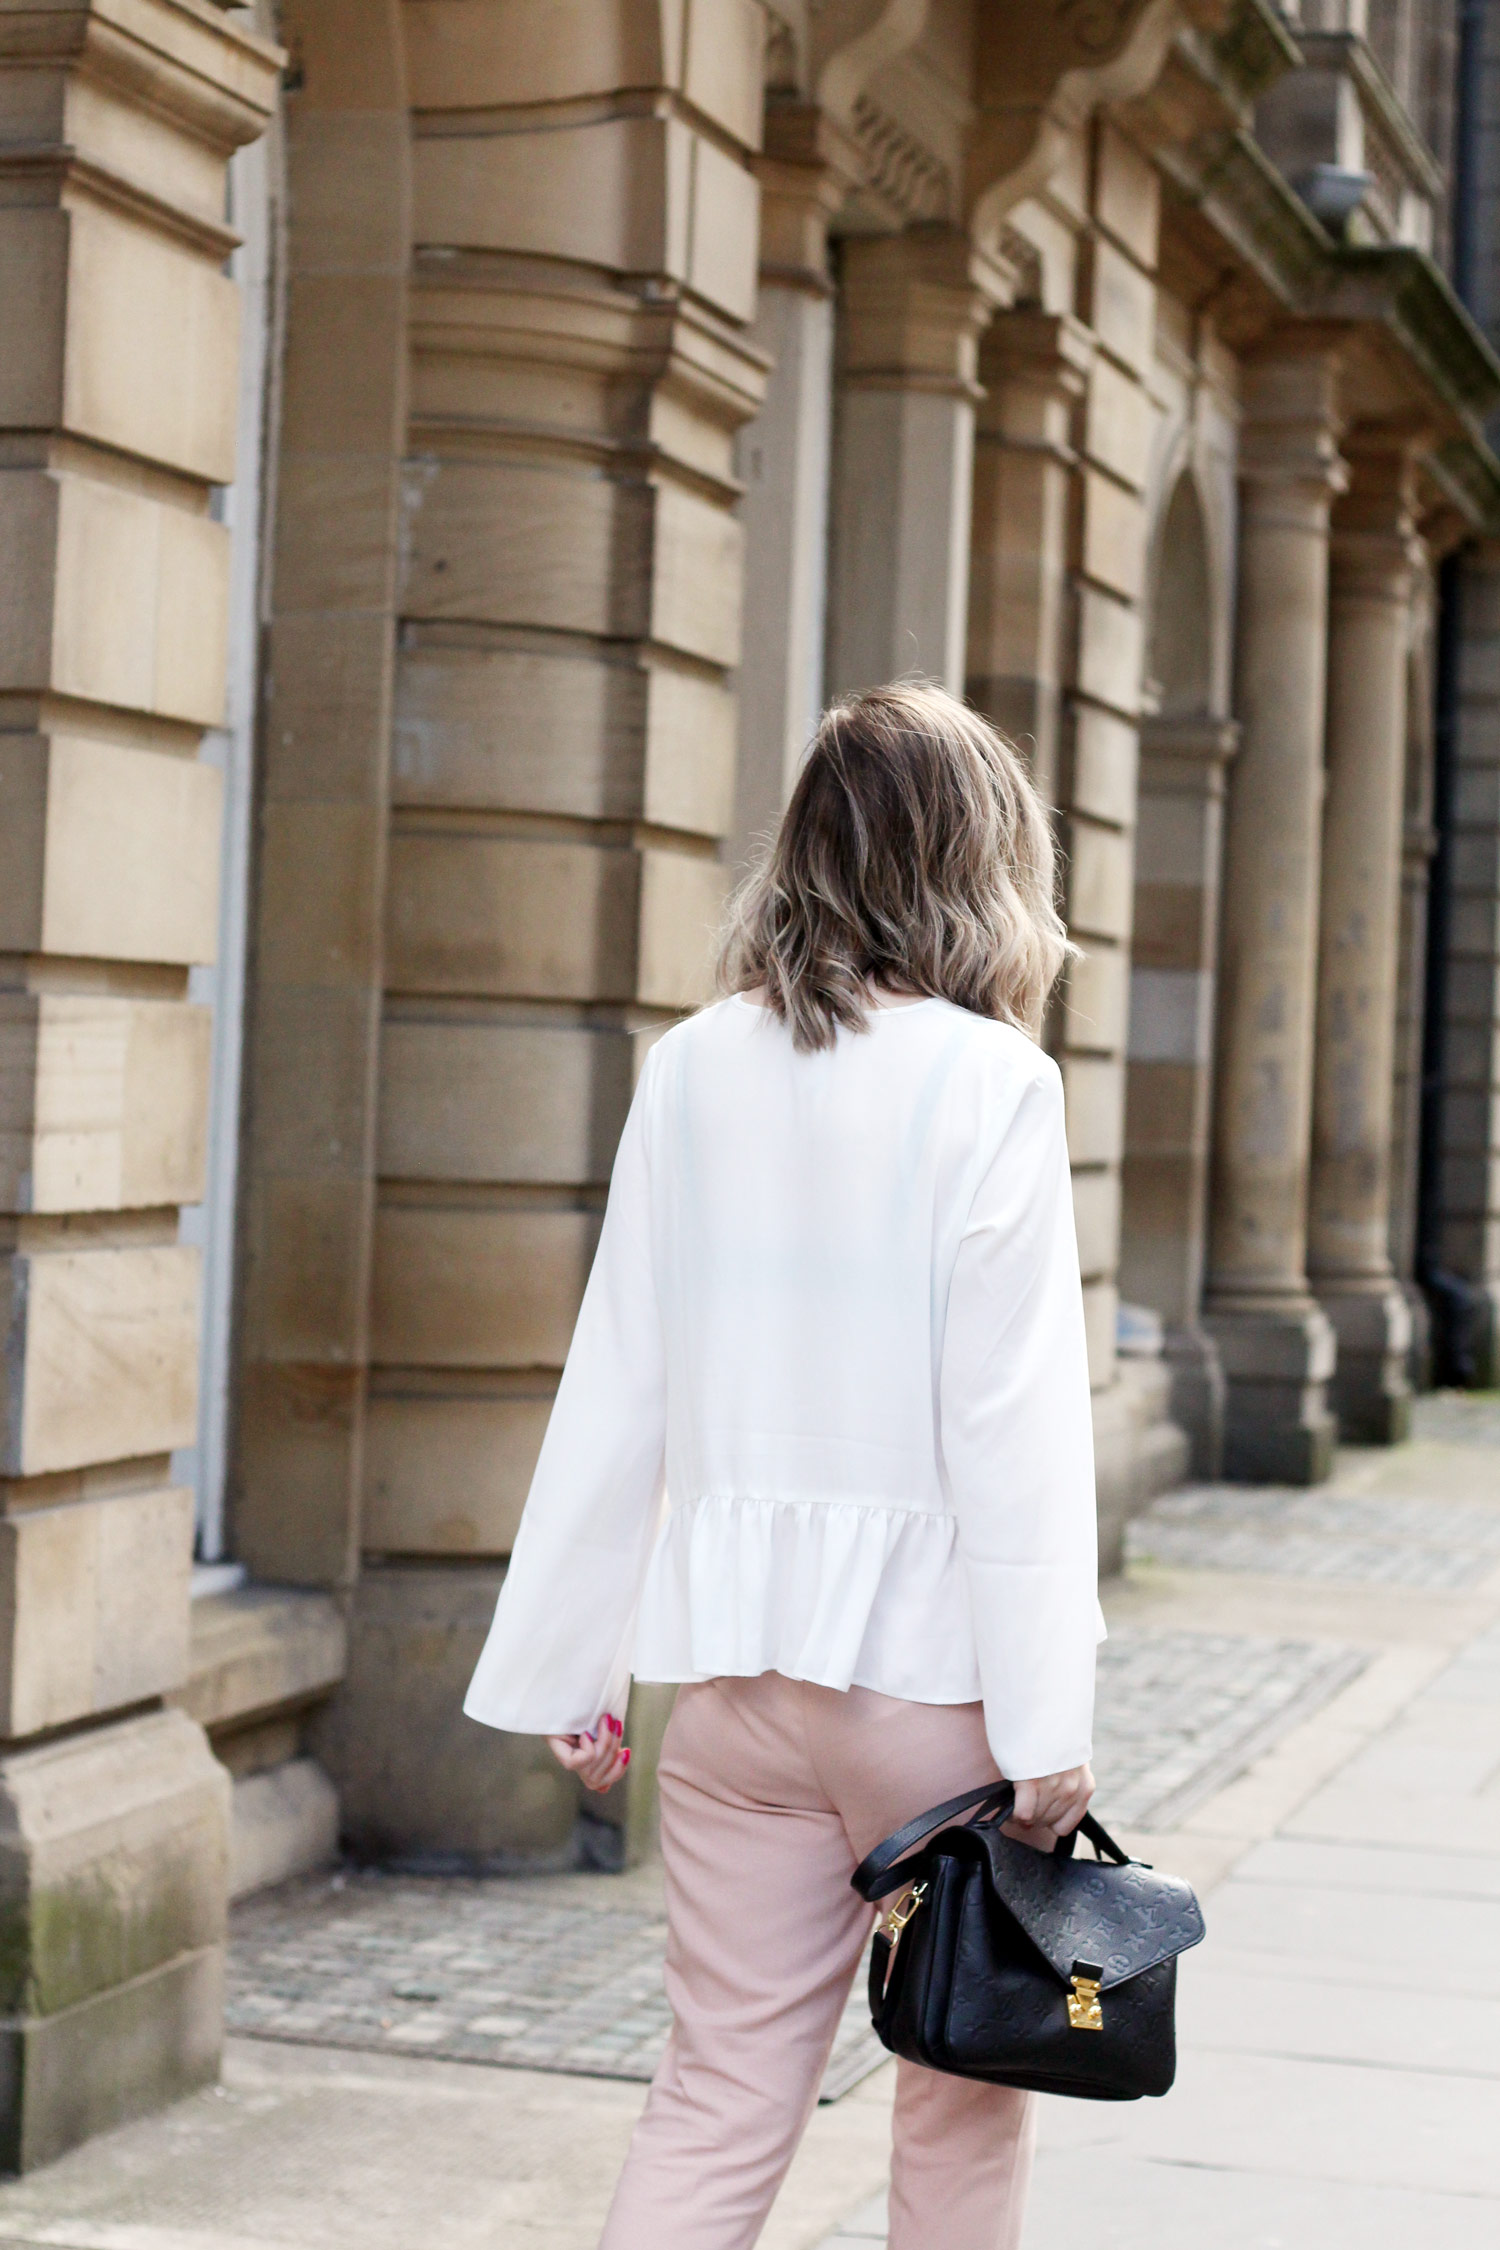 asos-white-ruffle-hem-blouse-M&S-pink-tie-trousers-gucci-jordaan-loafers-red-13